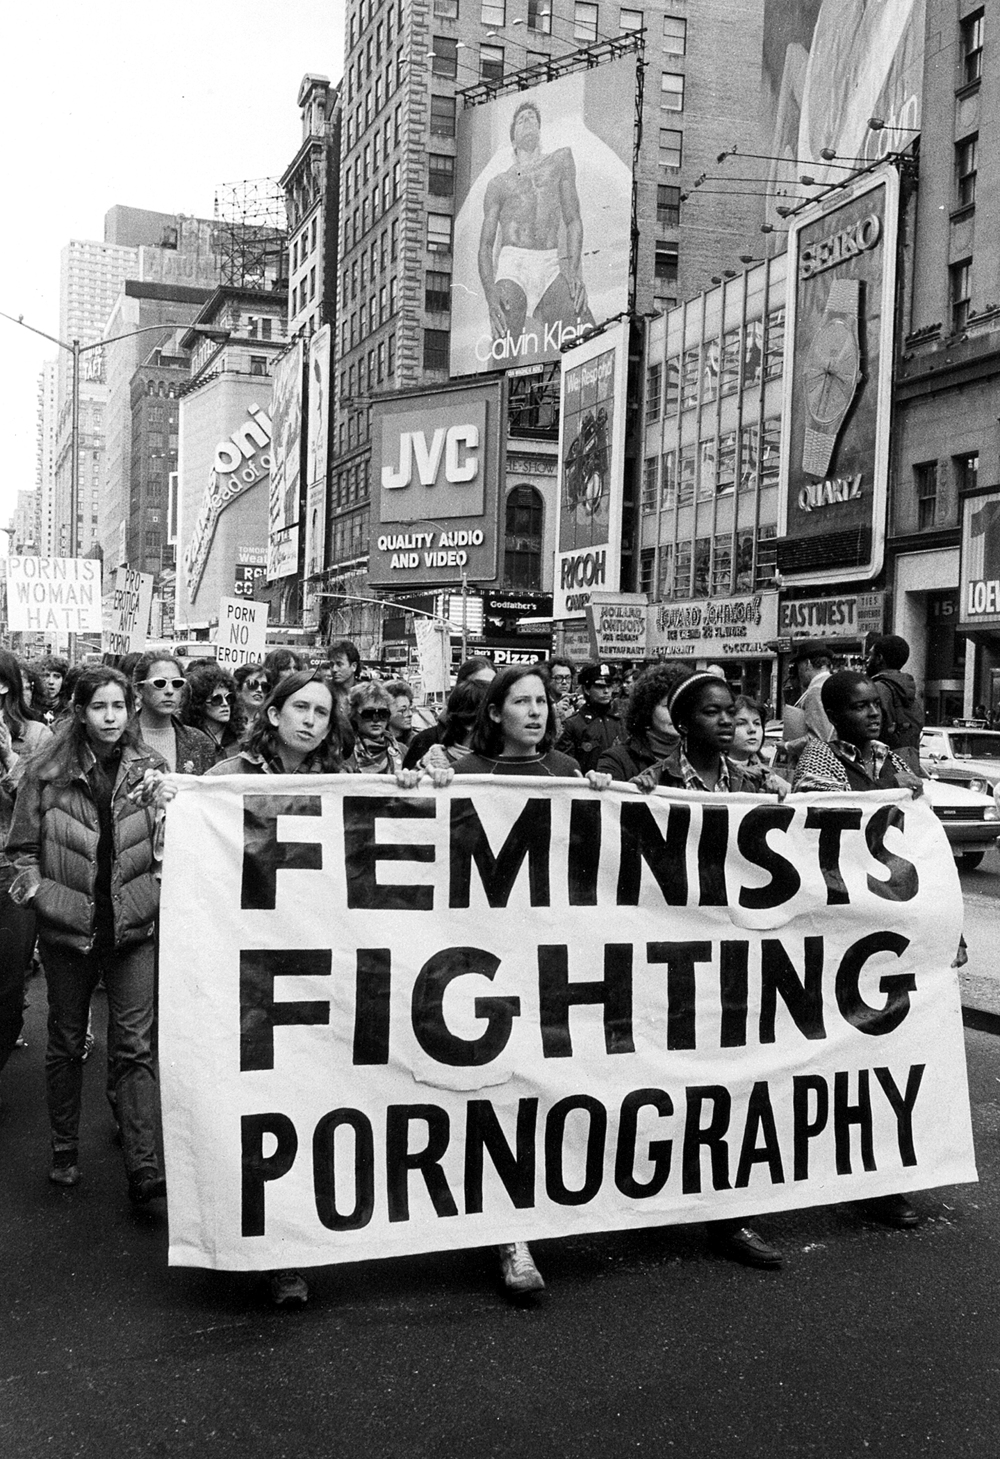 feminists fighting porno .jpg